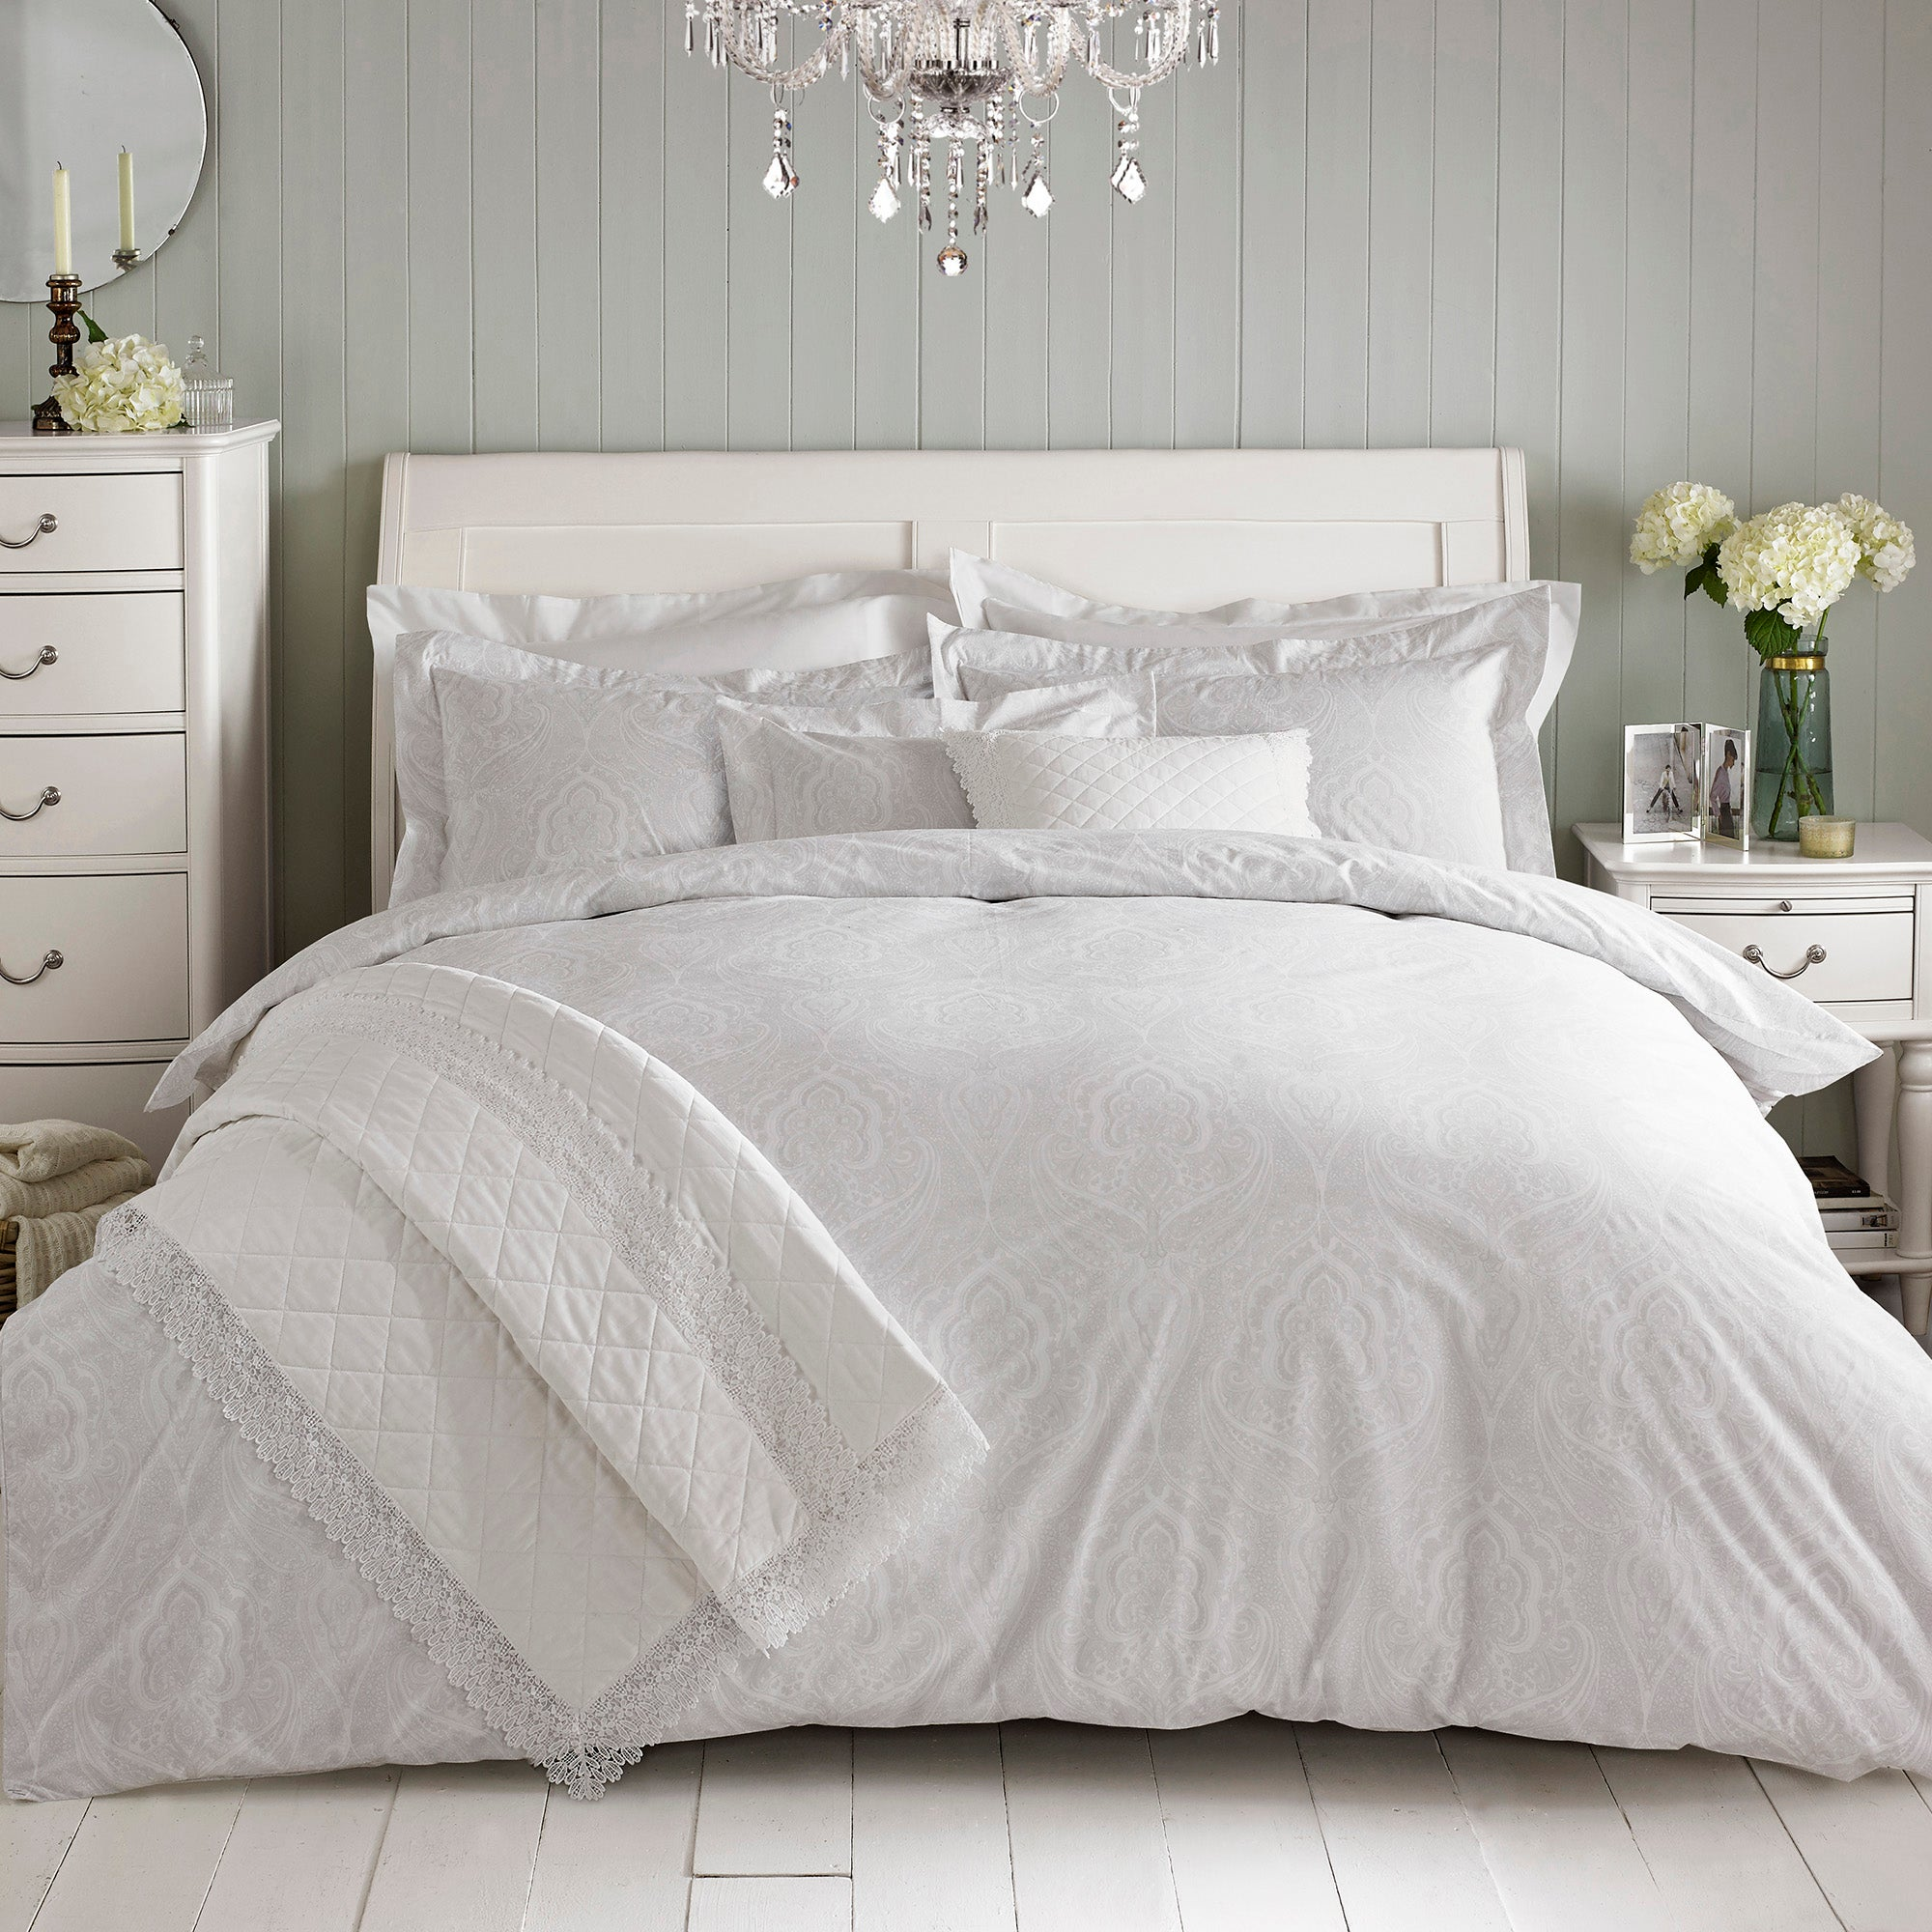 Image of Holly Willoughby Paisley Natural Duvet Cover Natural